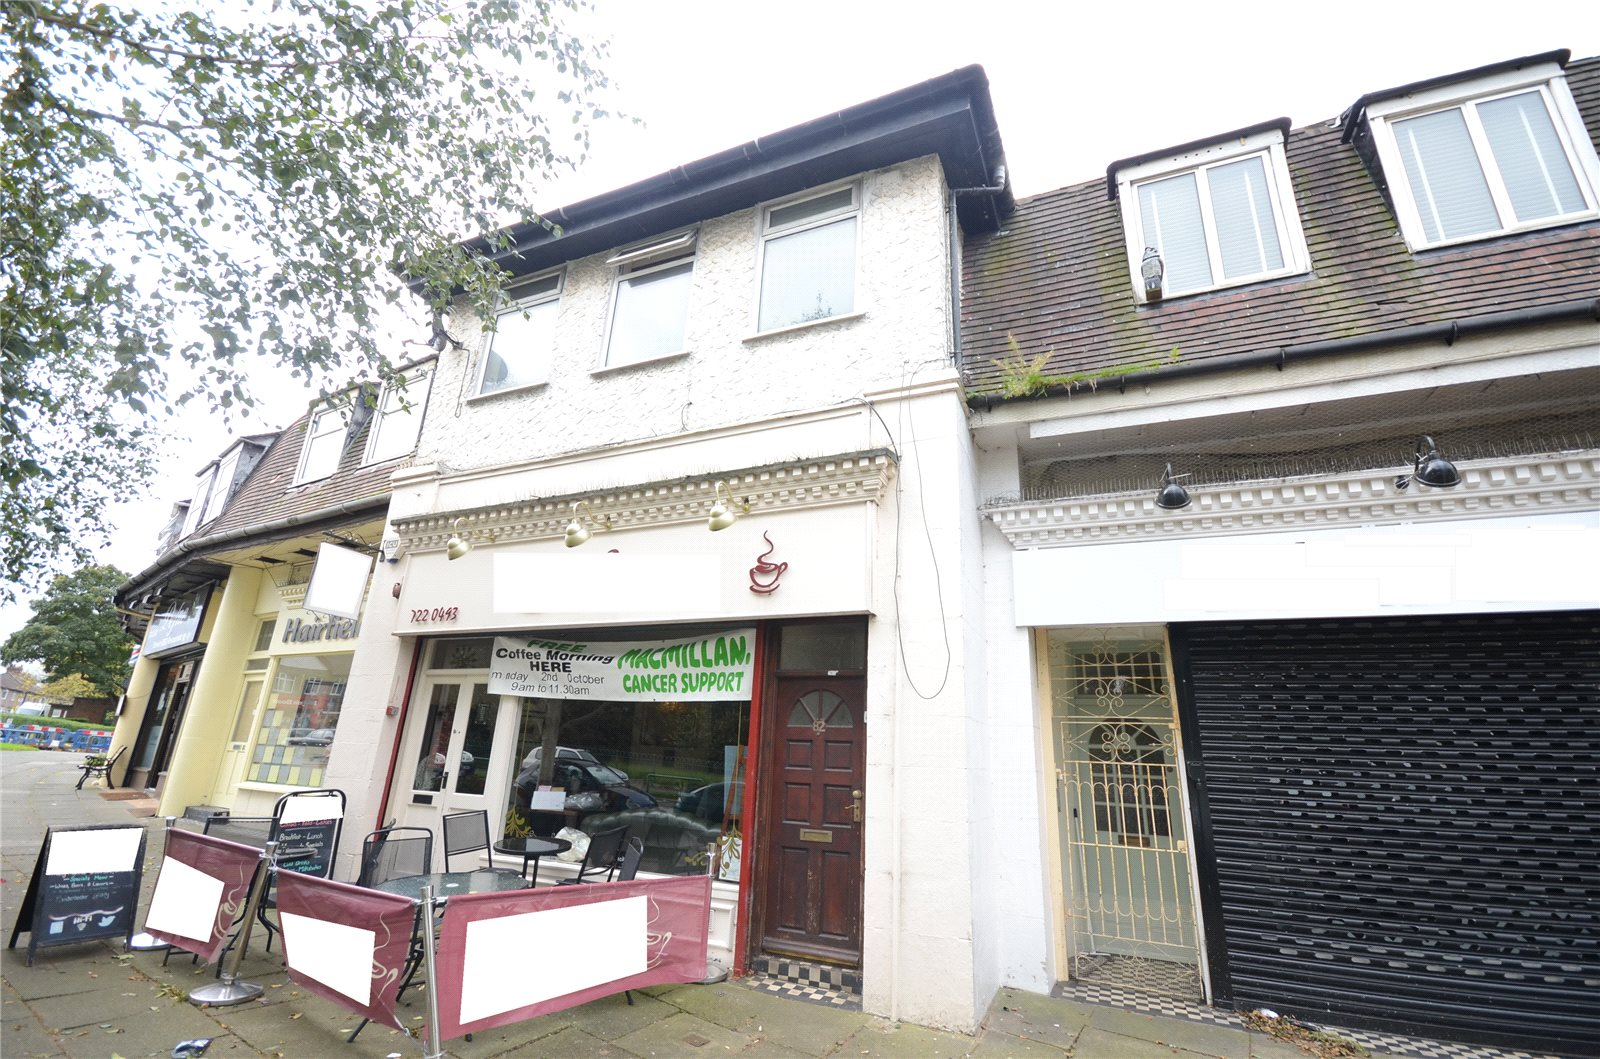 3 Bedrooms Apartment Flat for sale in Childwall Priory Road, Childwall, Liverpool, L16